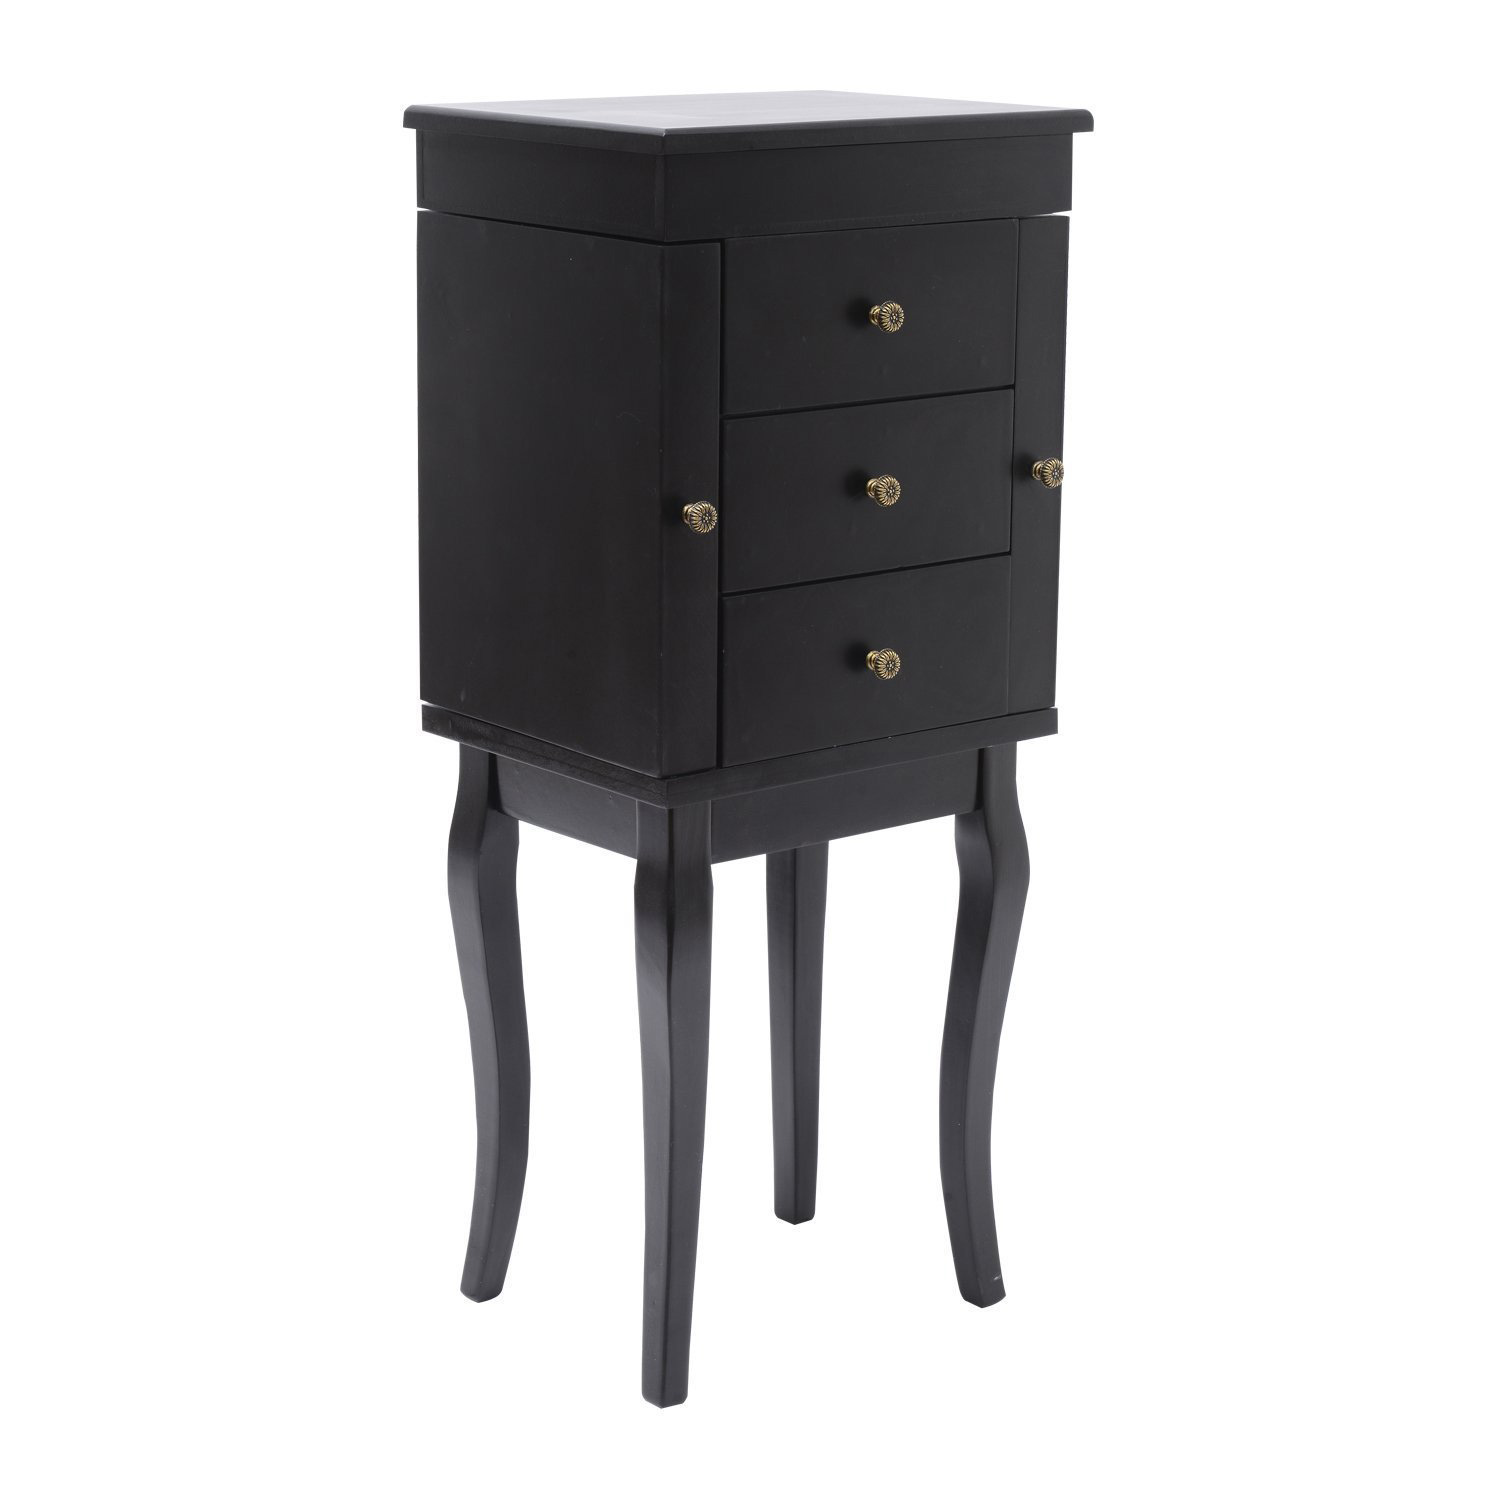 Cute Minimalist Black Floor Standing Jewelry Armoire